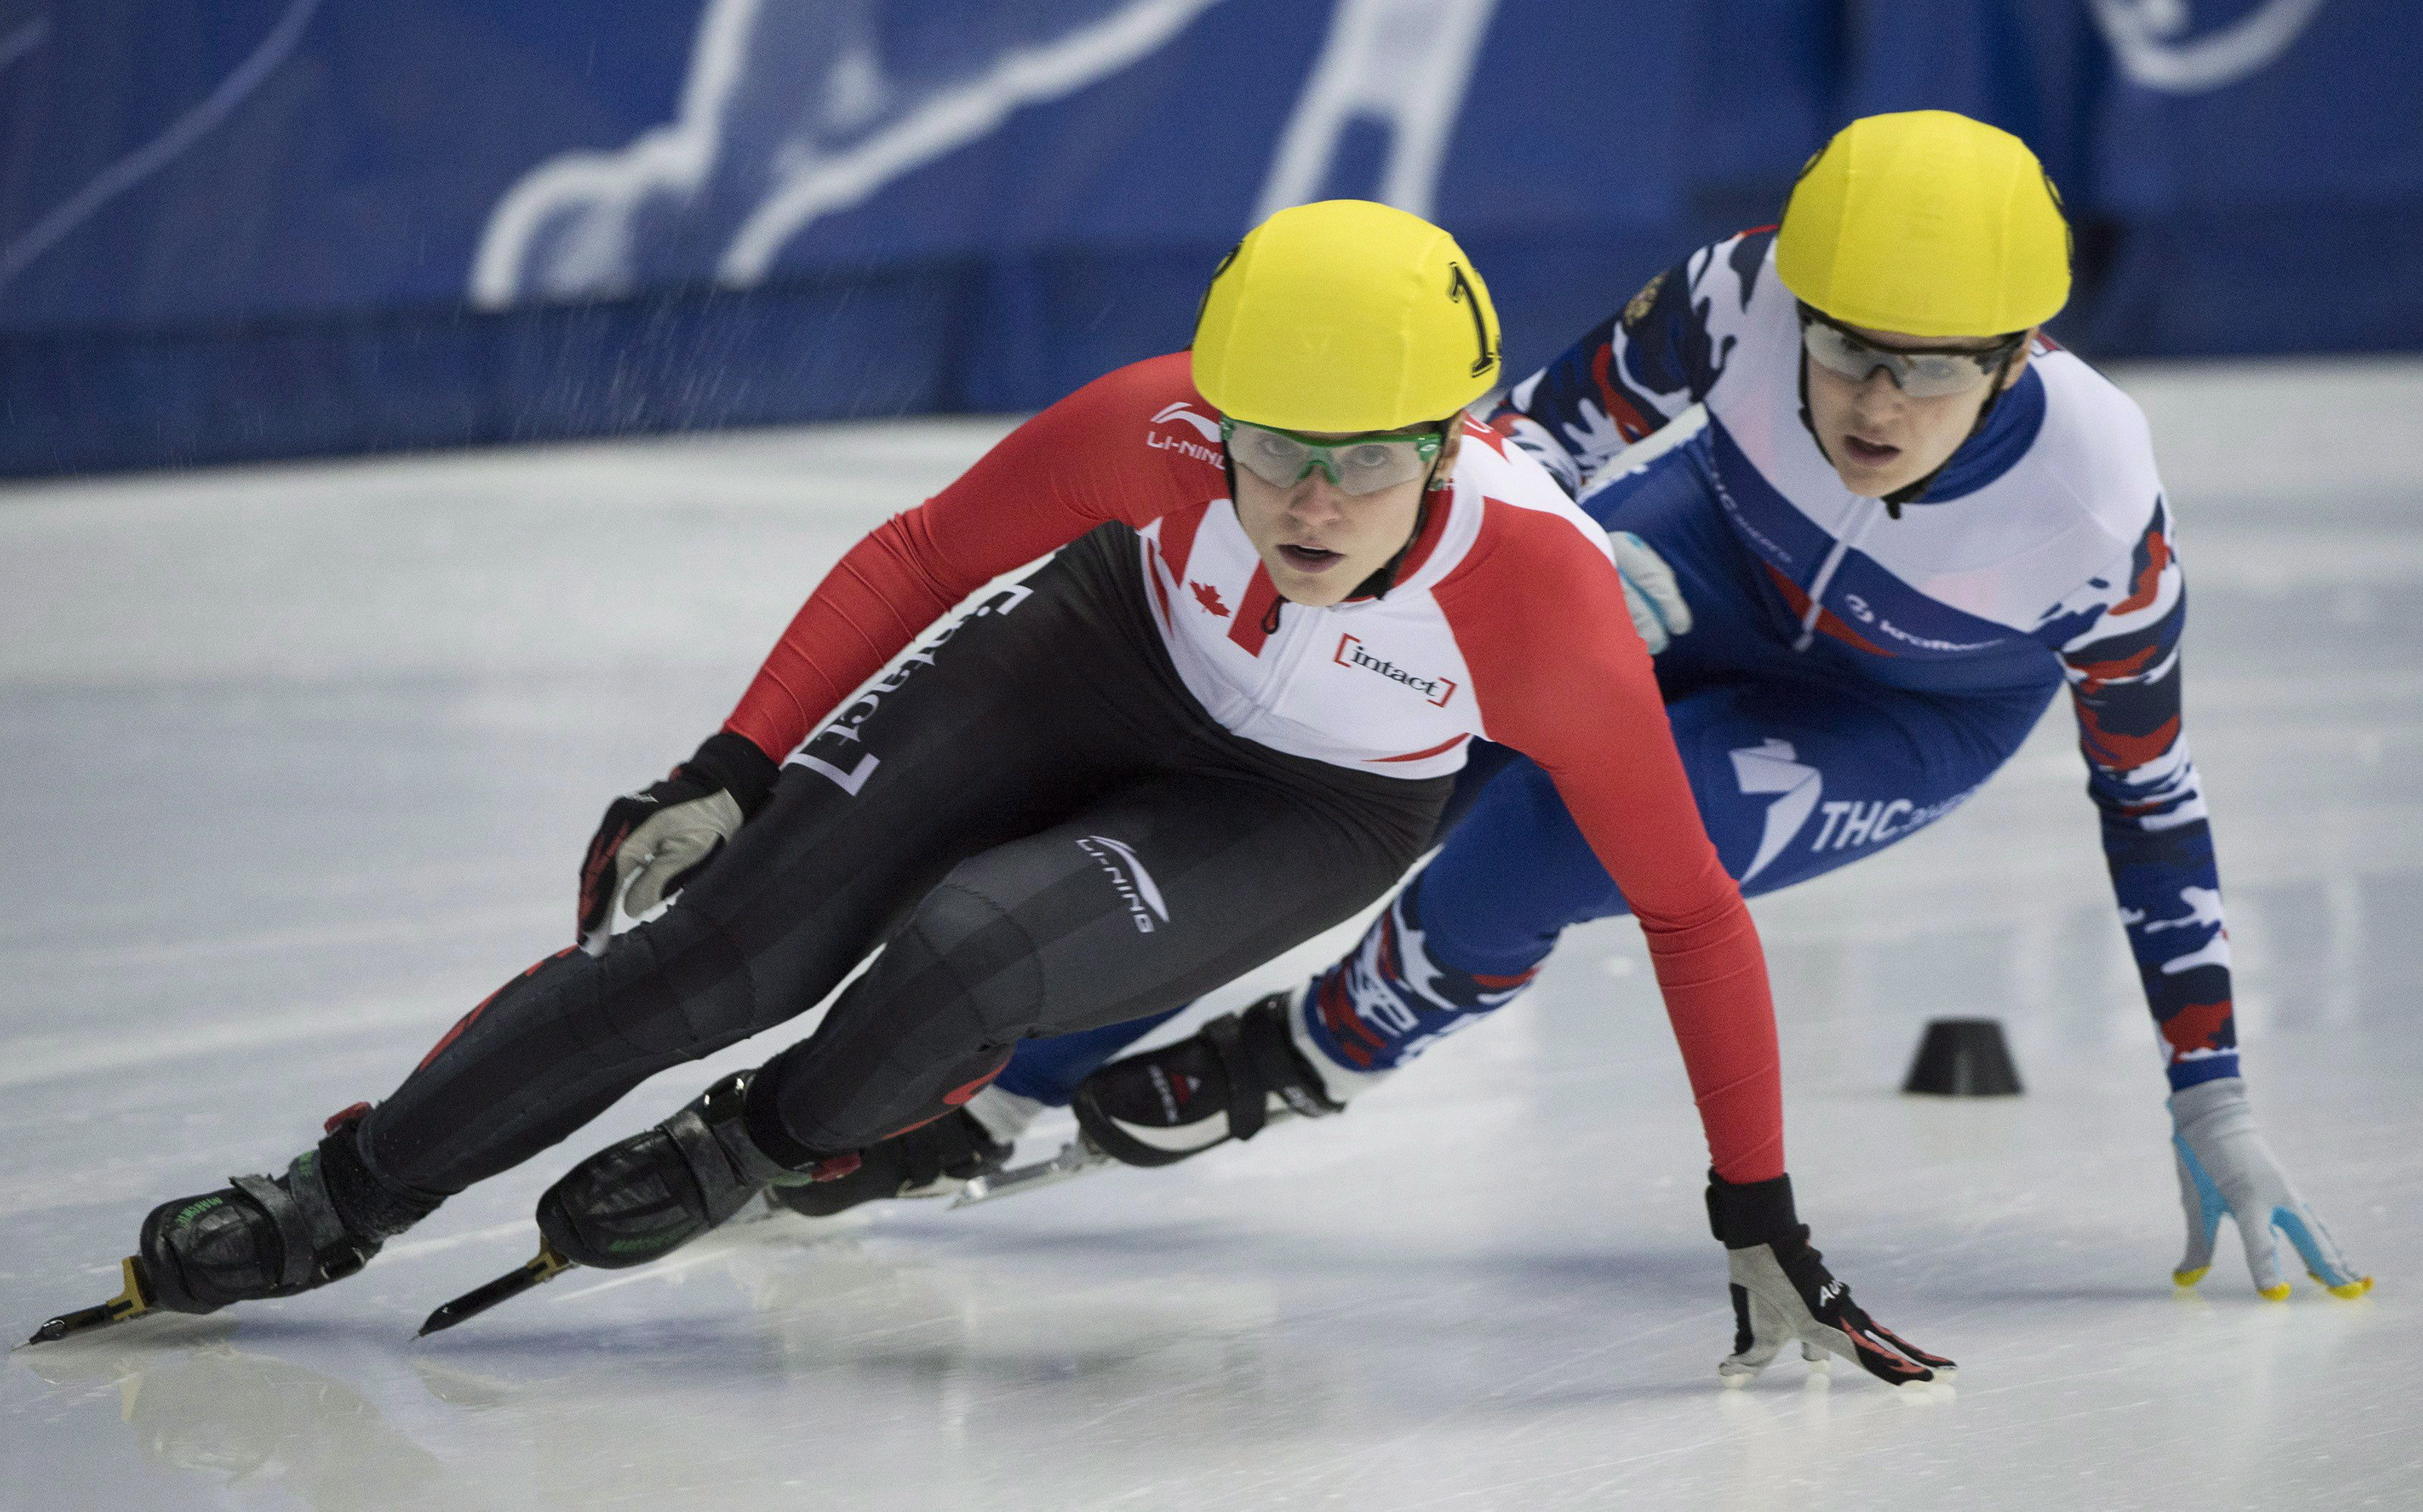 Team Canada - Kasandra Bradette takes a turn at the ISU World Cup short-track speedskating competition in Montreal